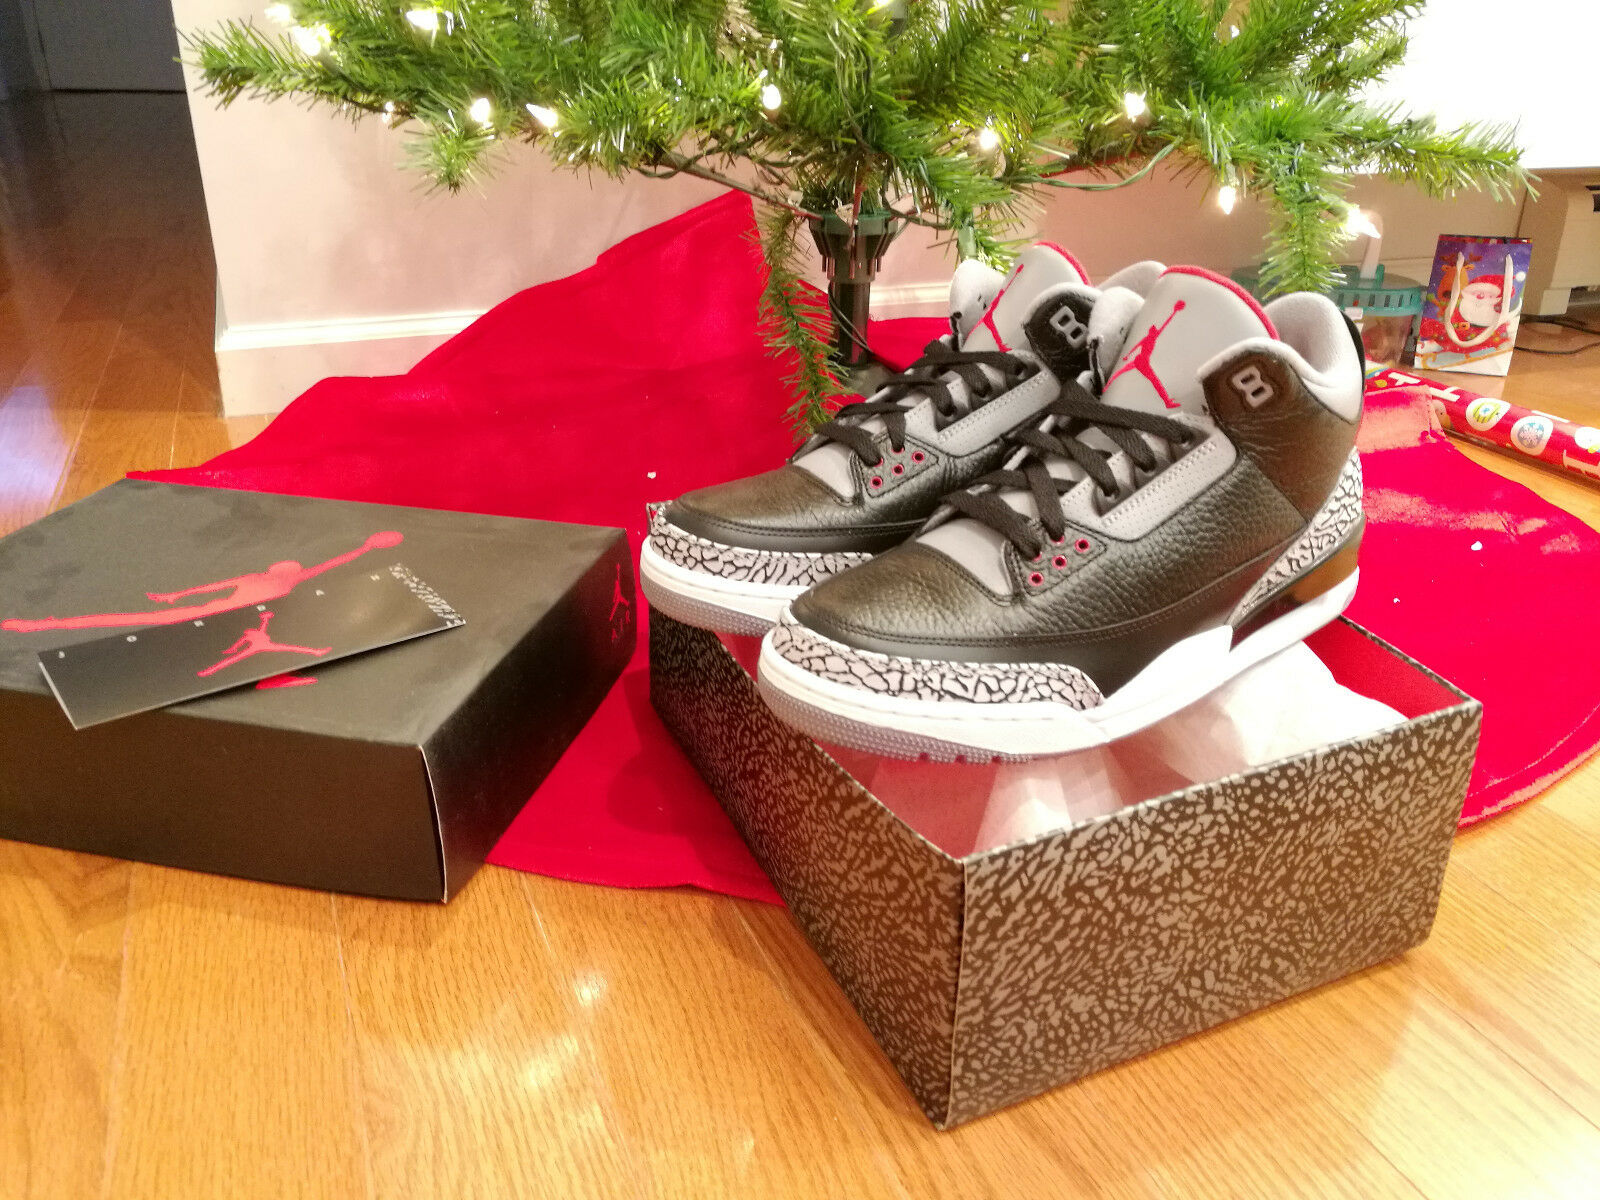 Brand New DS 2018 Nike Air Jordan III 3 Retro black varsity red-cement grey 9.5 Cheap women's shoes women's shoes